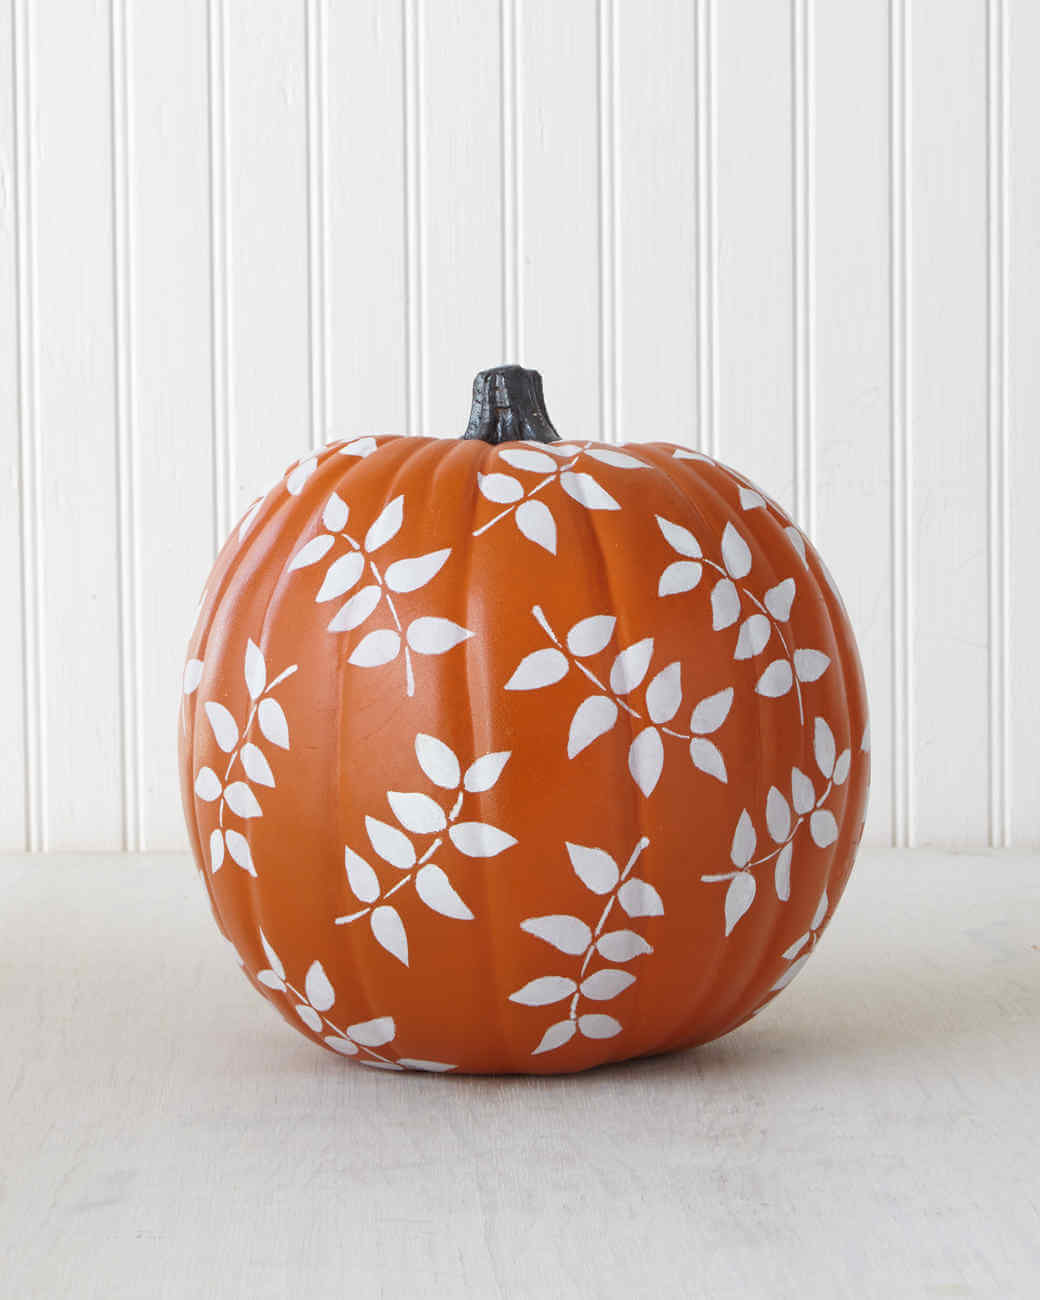 28 Best No-Carve Pumpkin Decorating Ideas and Designs for 2017